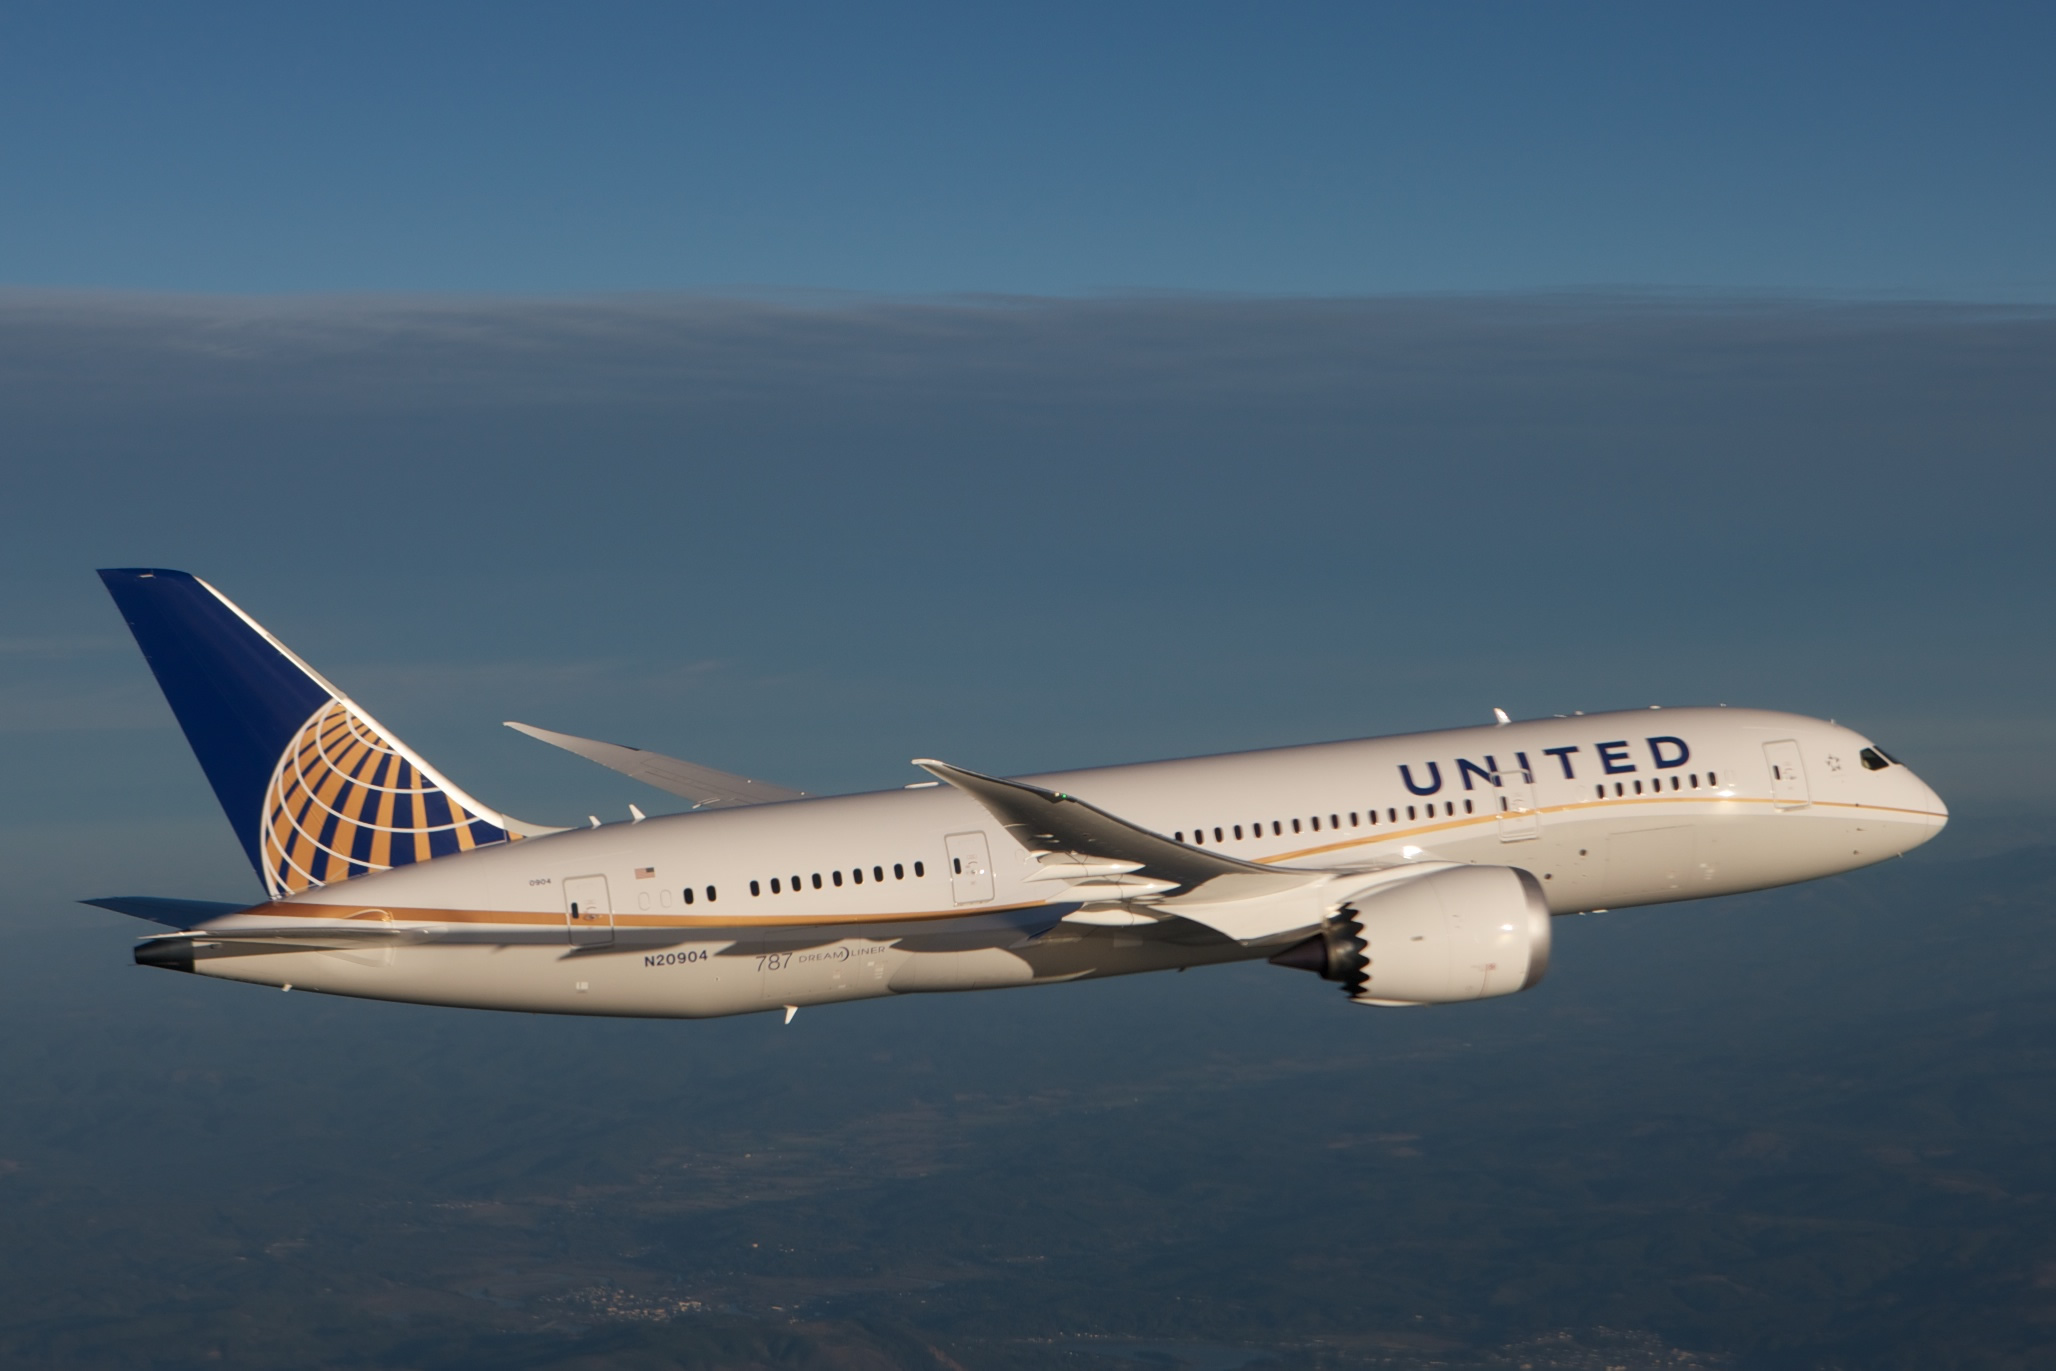 United to buy up to 10 million gallons of biofuel